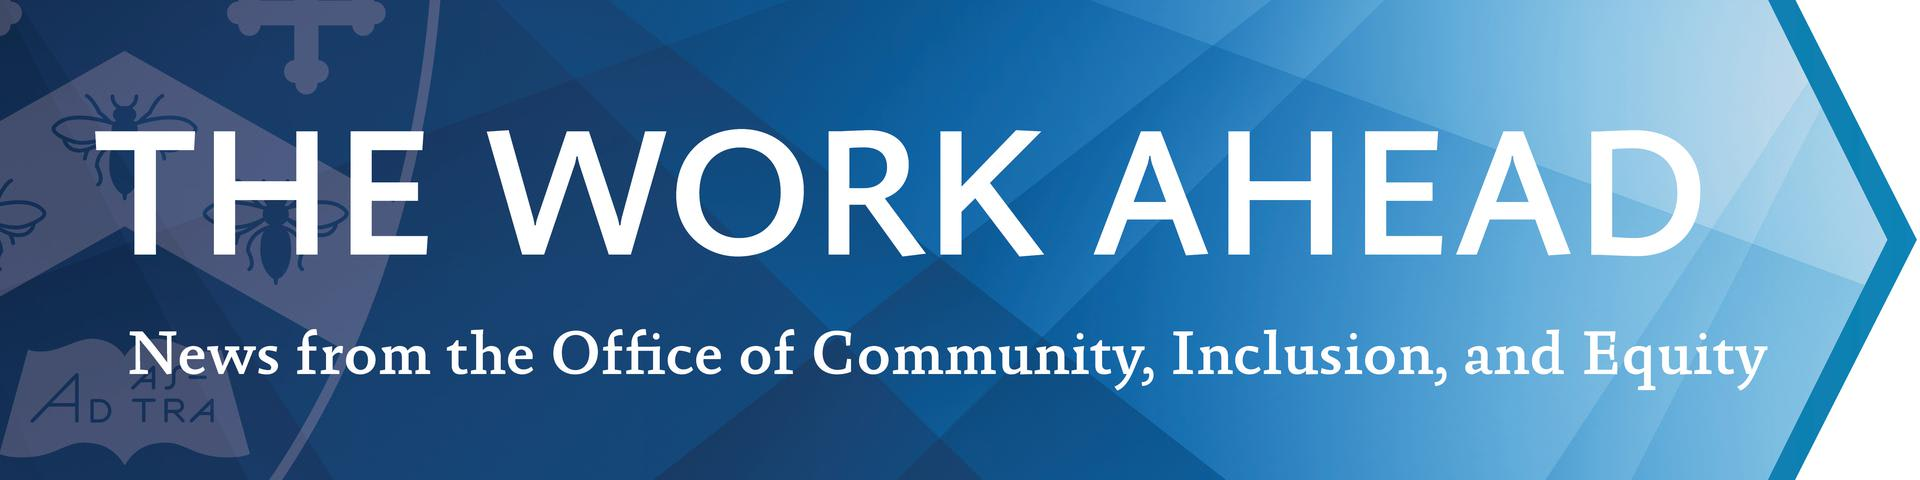 The Work Ahead: News from the Office of Community, Inclusion, and Equity